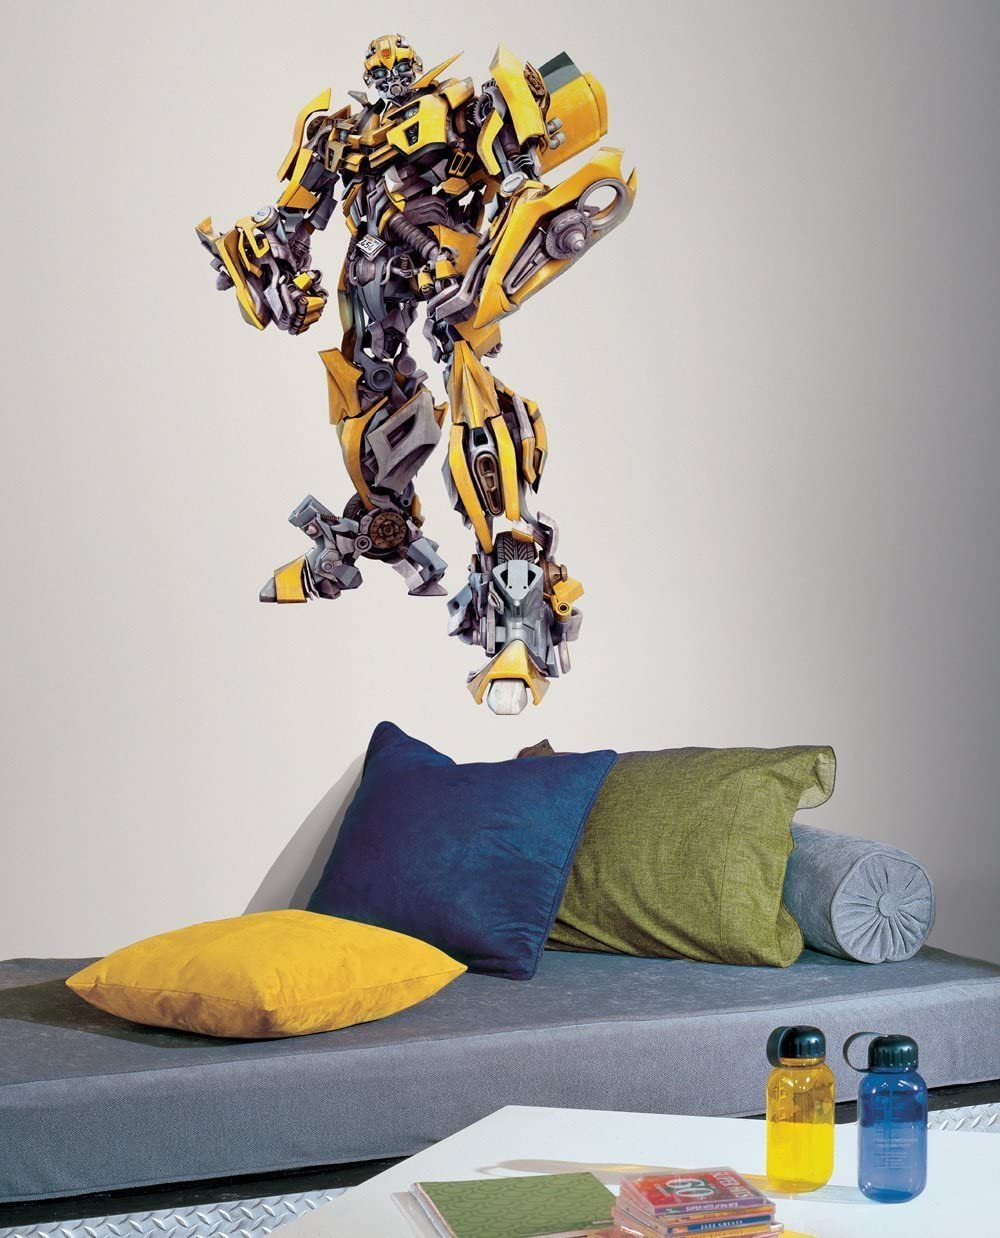 Transformer Wall Decal - Bumblebee - Giant Wall Sticker Decor Party Decoration (Bumblebee Giant)